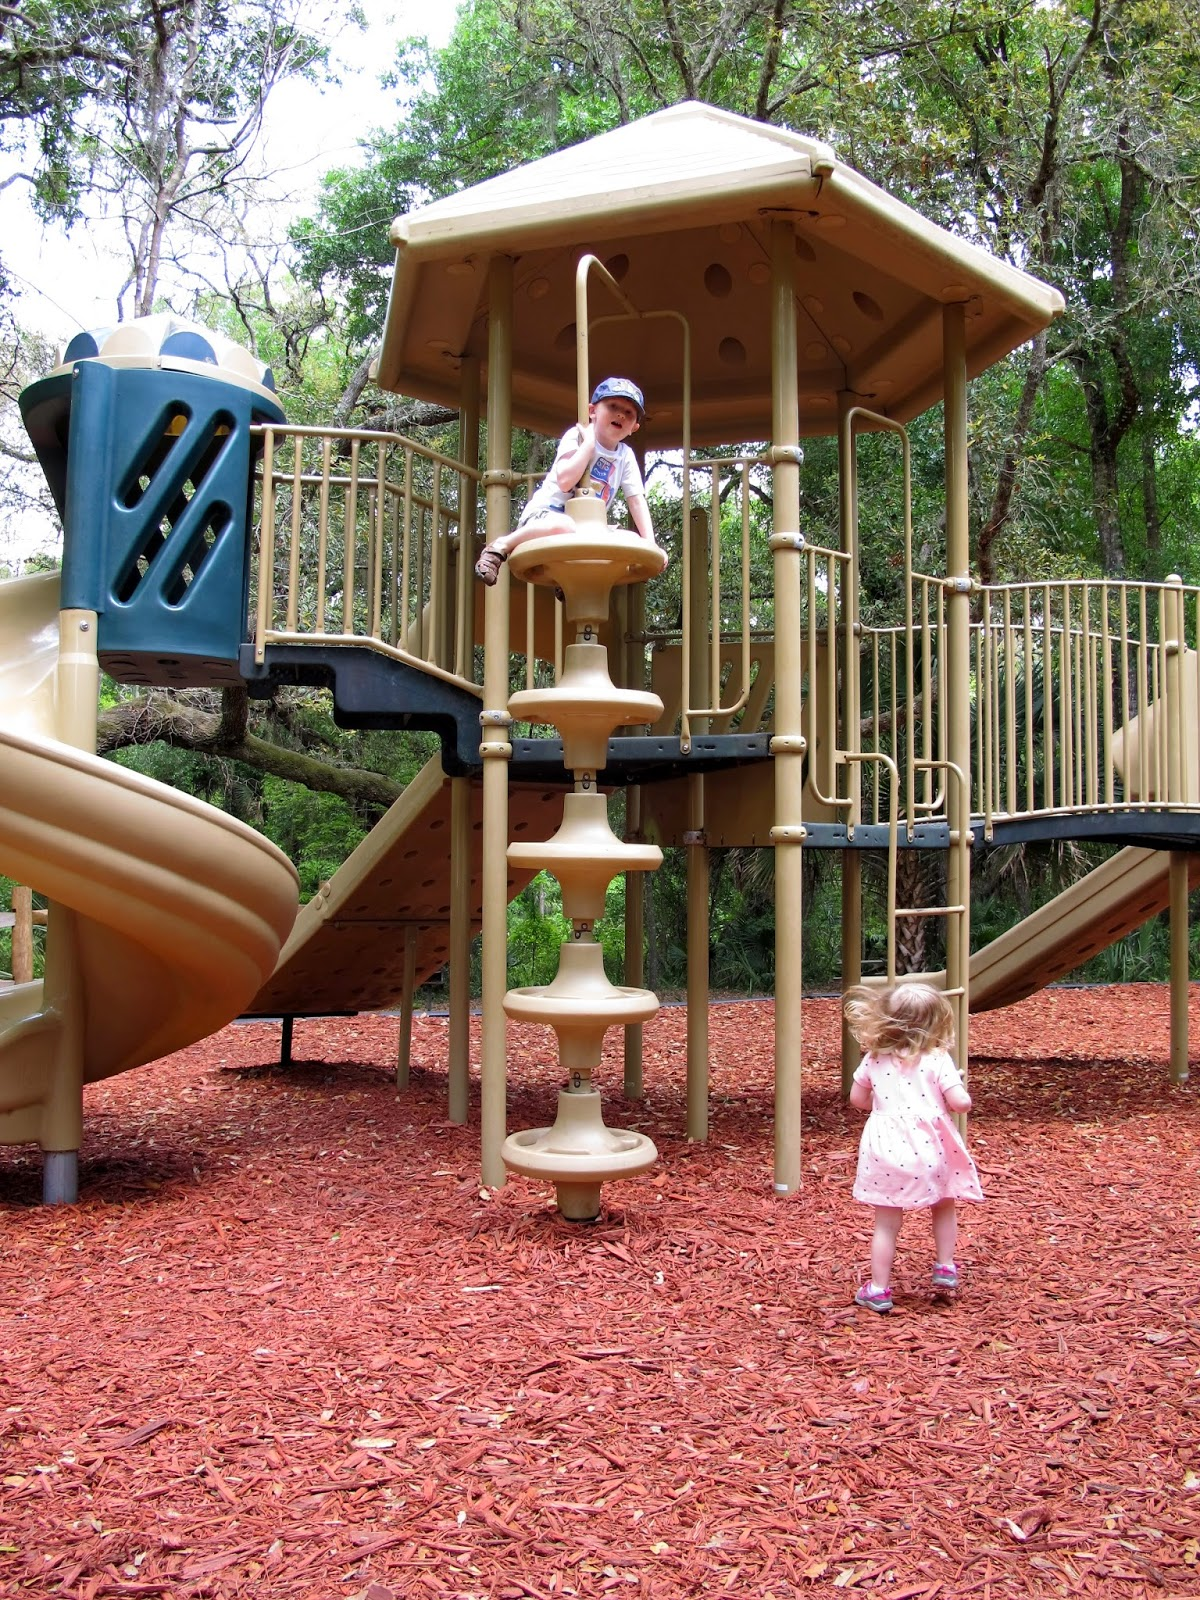 Playground Fun at Wekiwa Springs